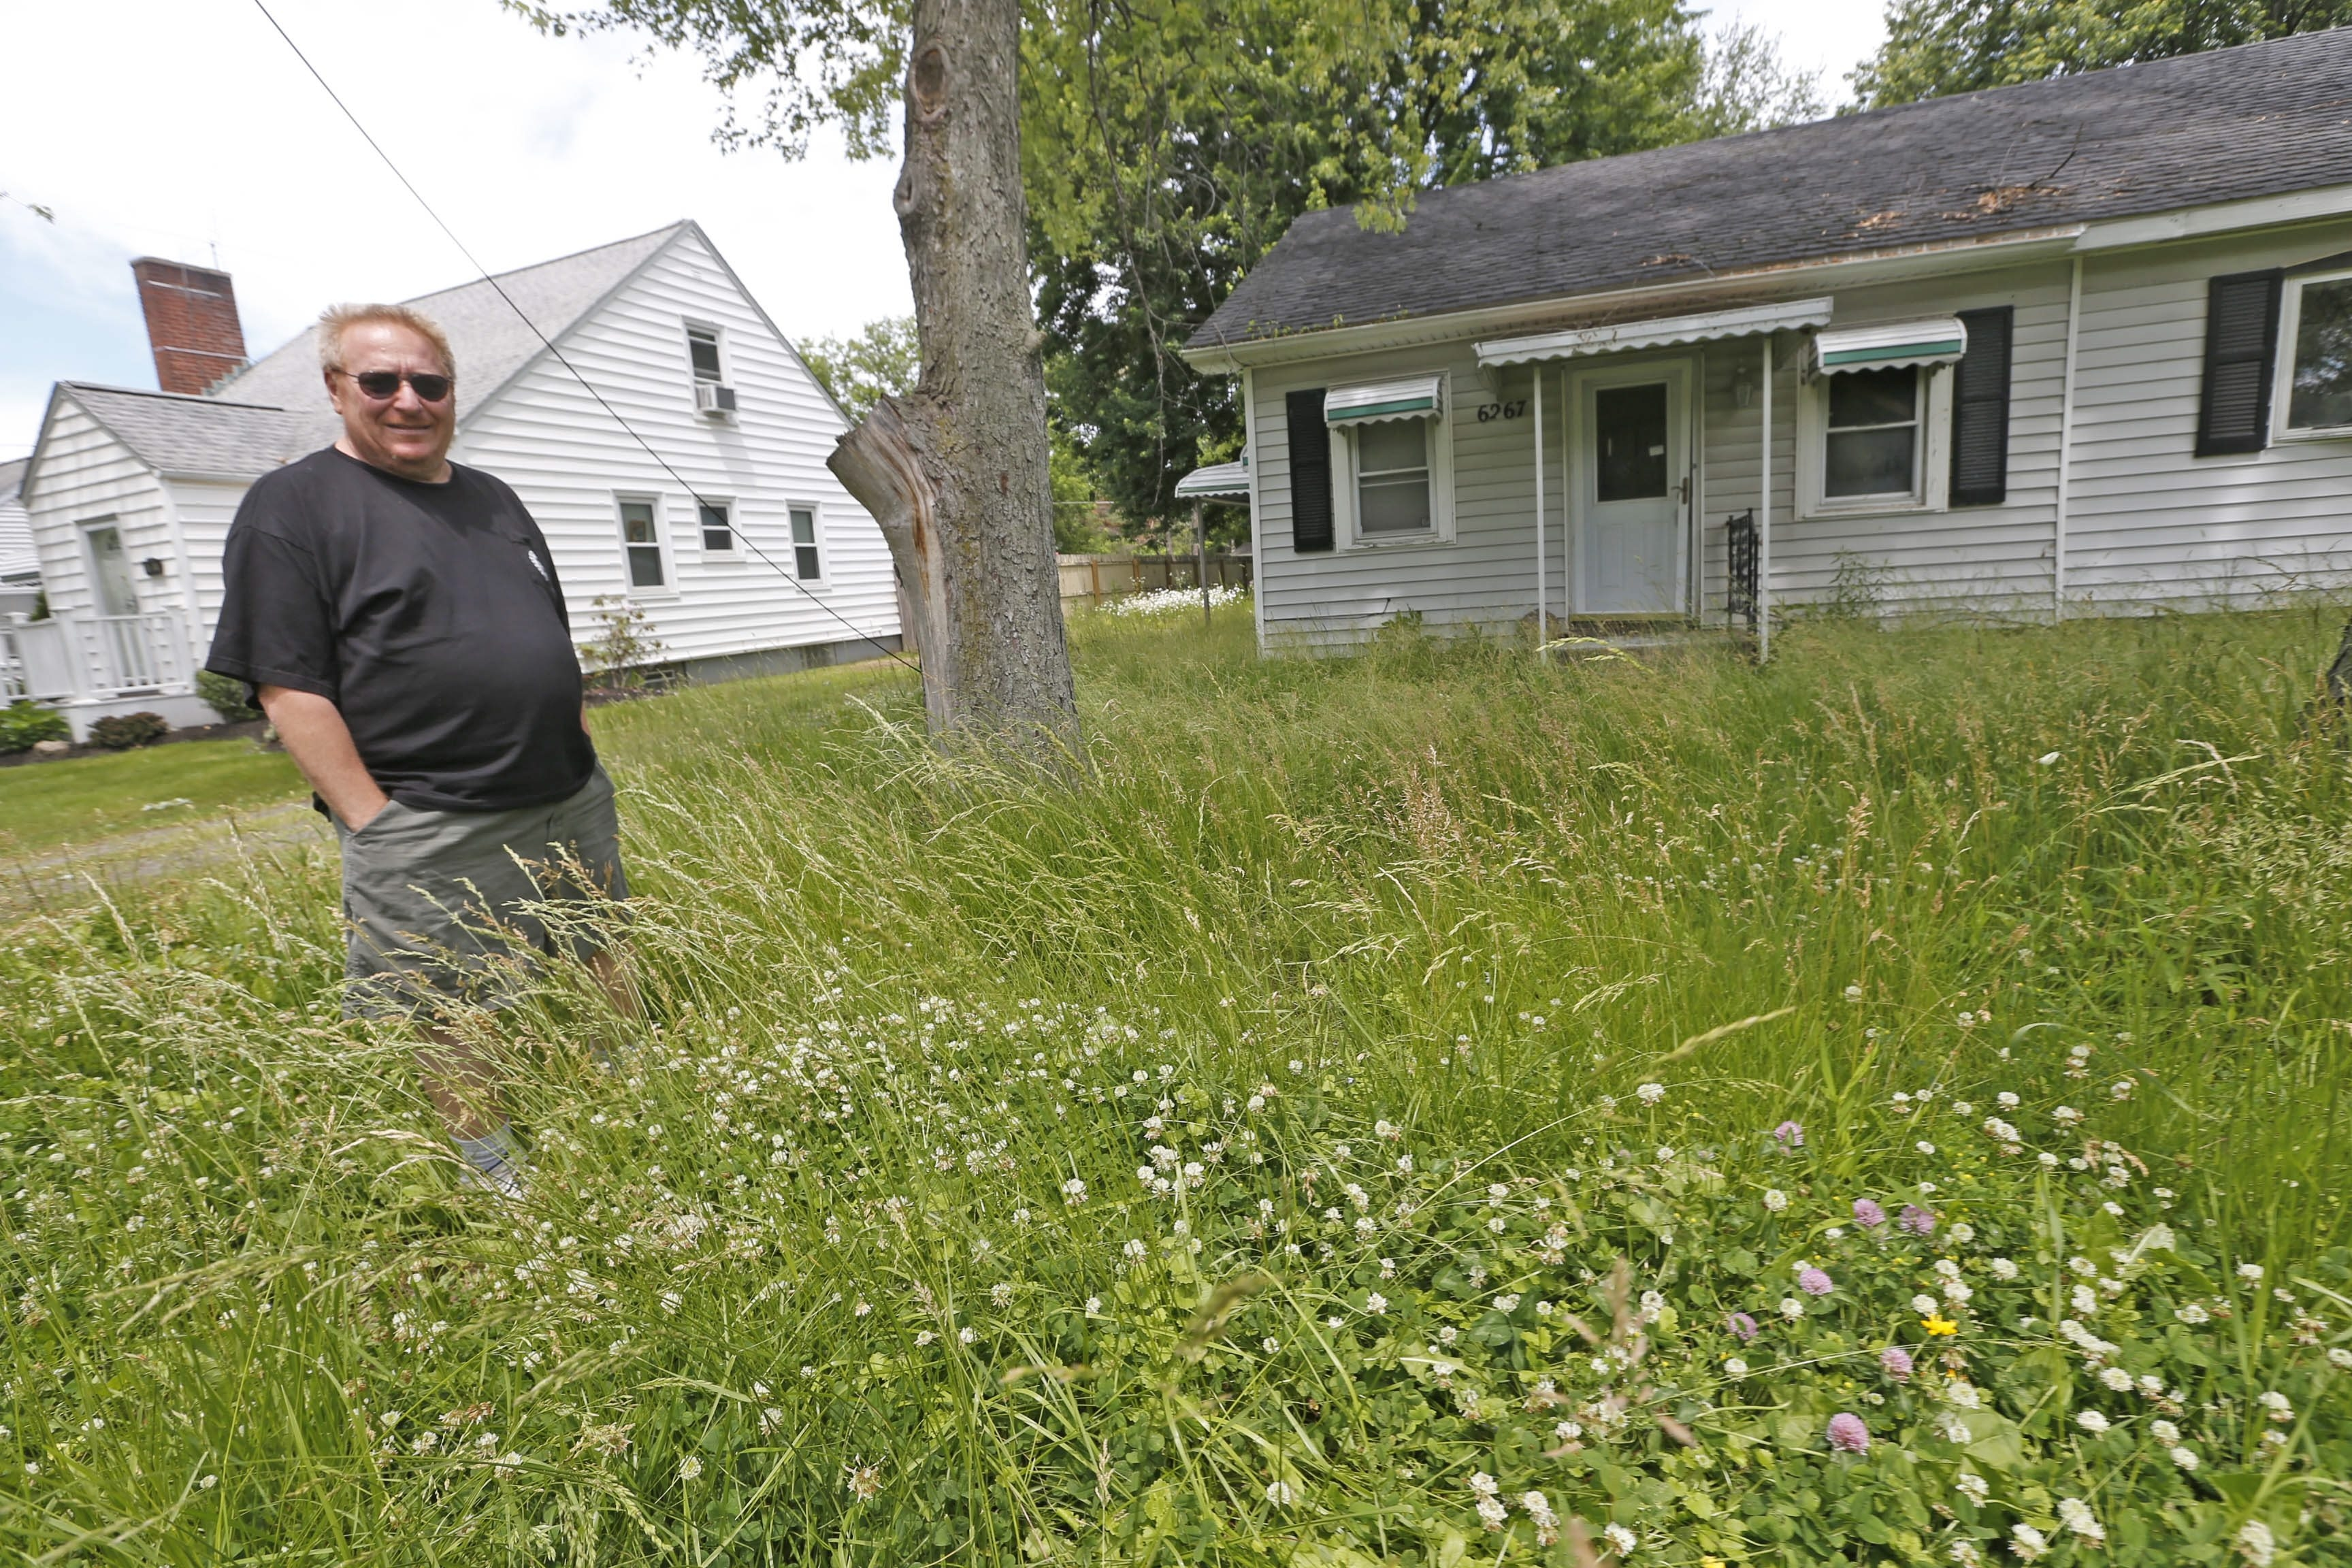 Anthony J. Southard has been complaining about the overgrown lot across the street from his Dorchester Road home.